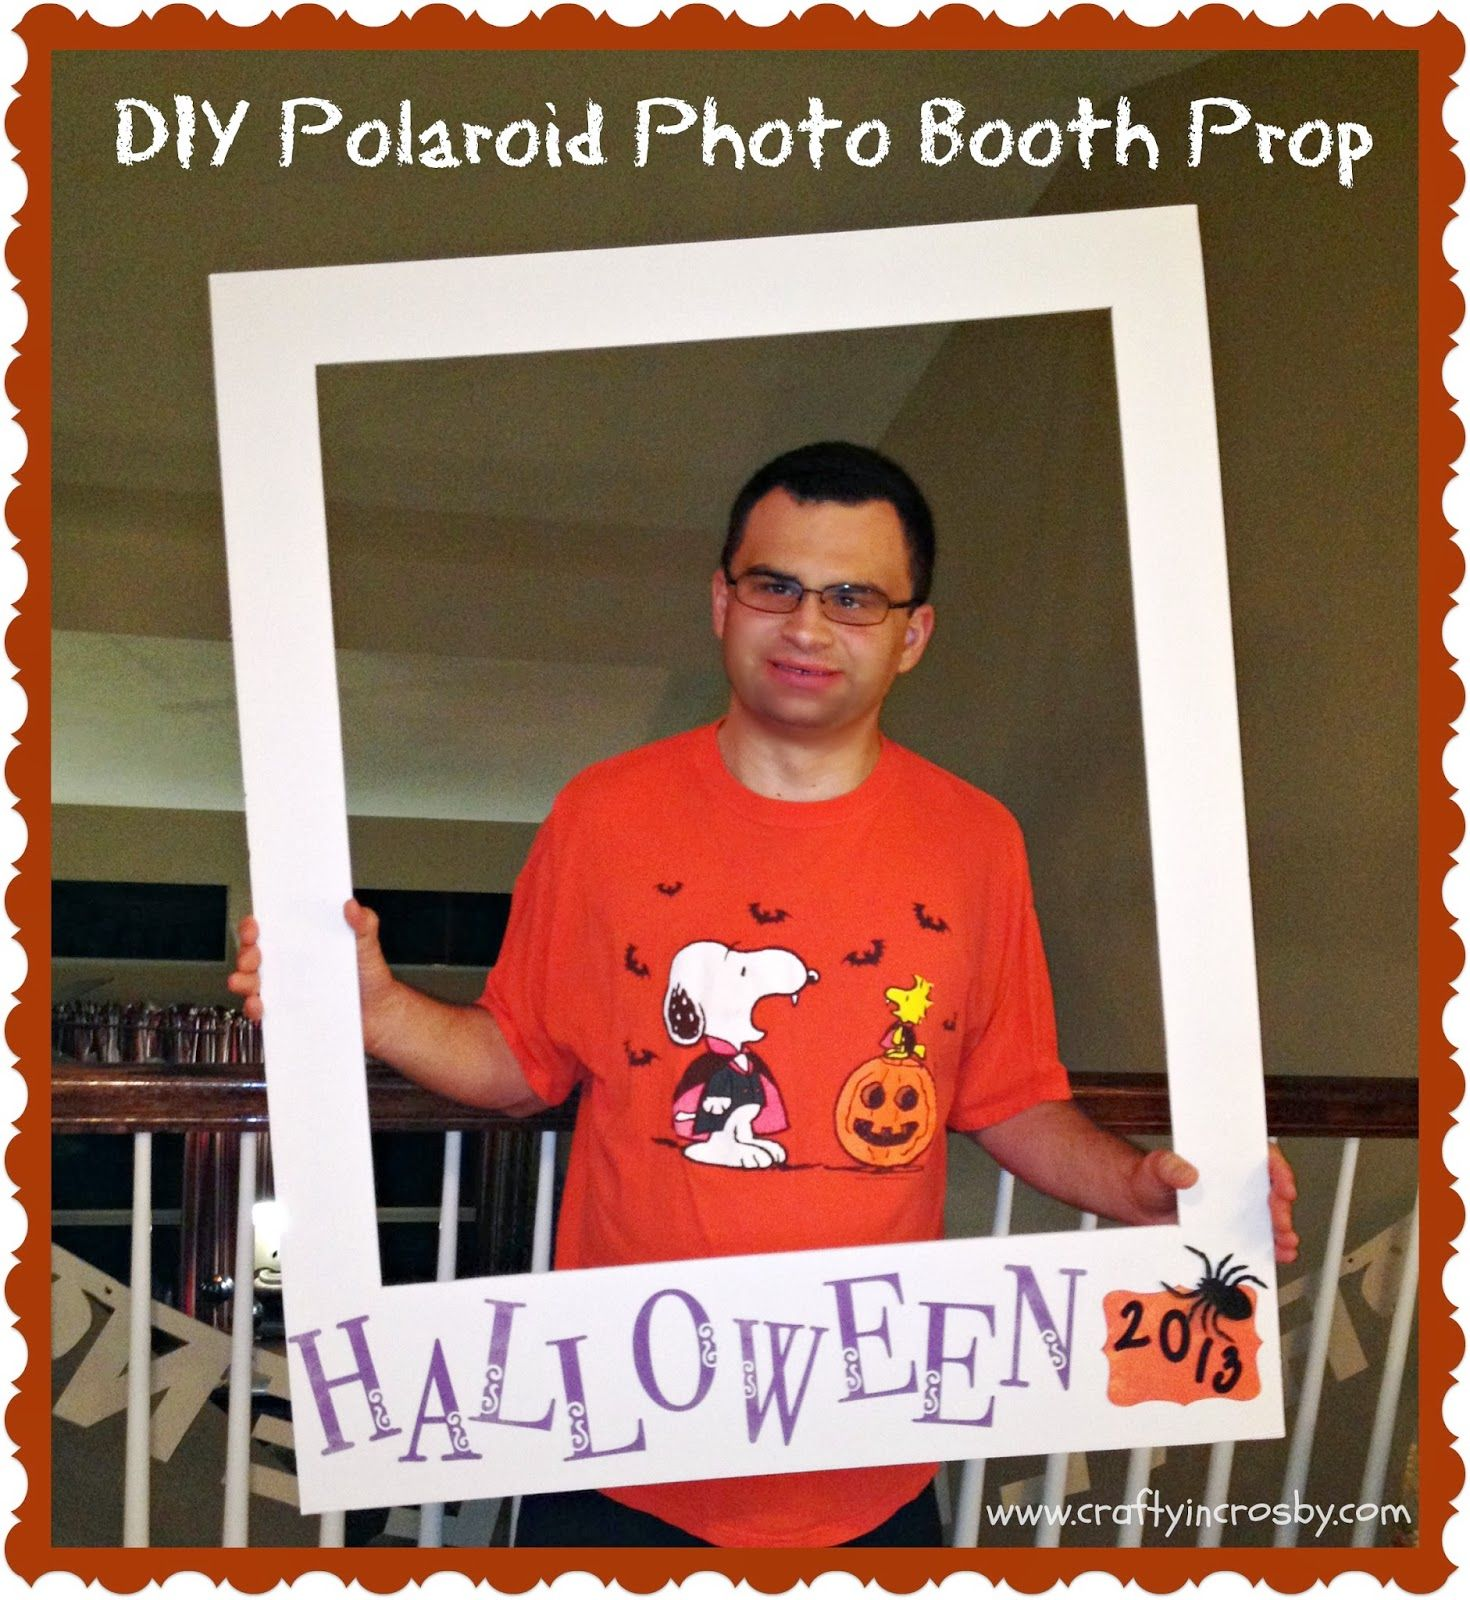 DIY Polaroid Photo Booth Prop - Finally! Instructions on how to make ...